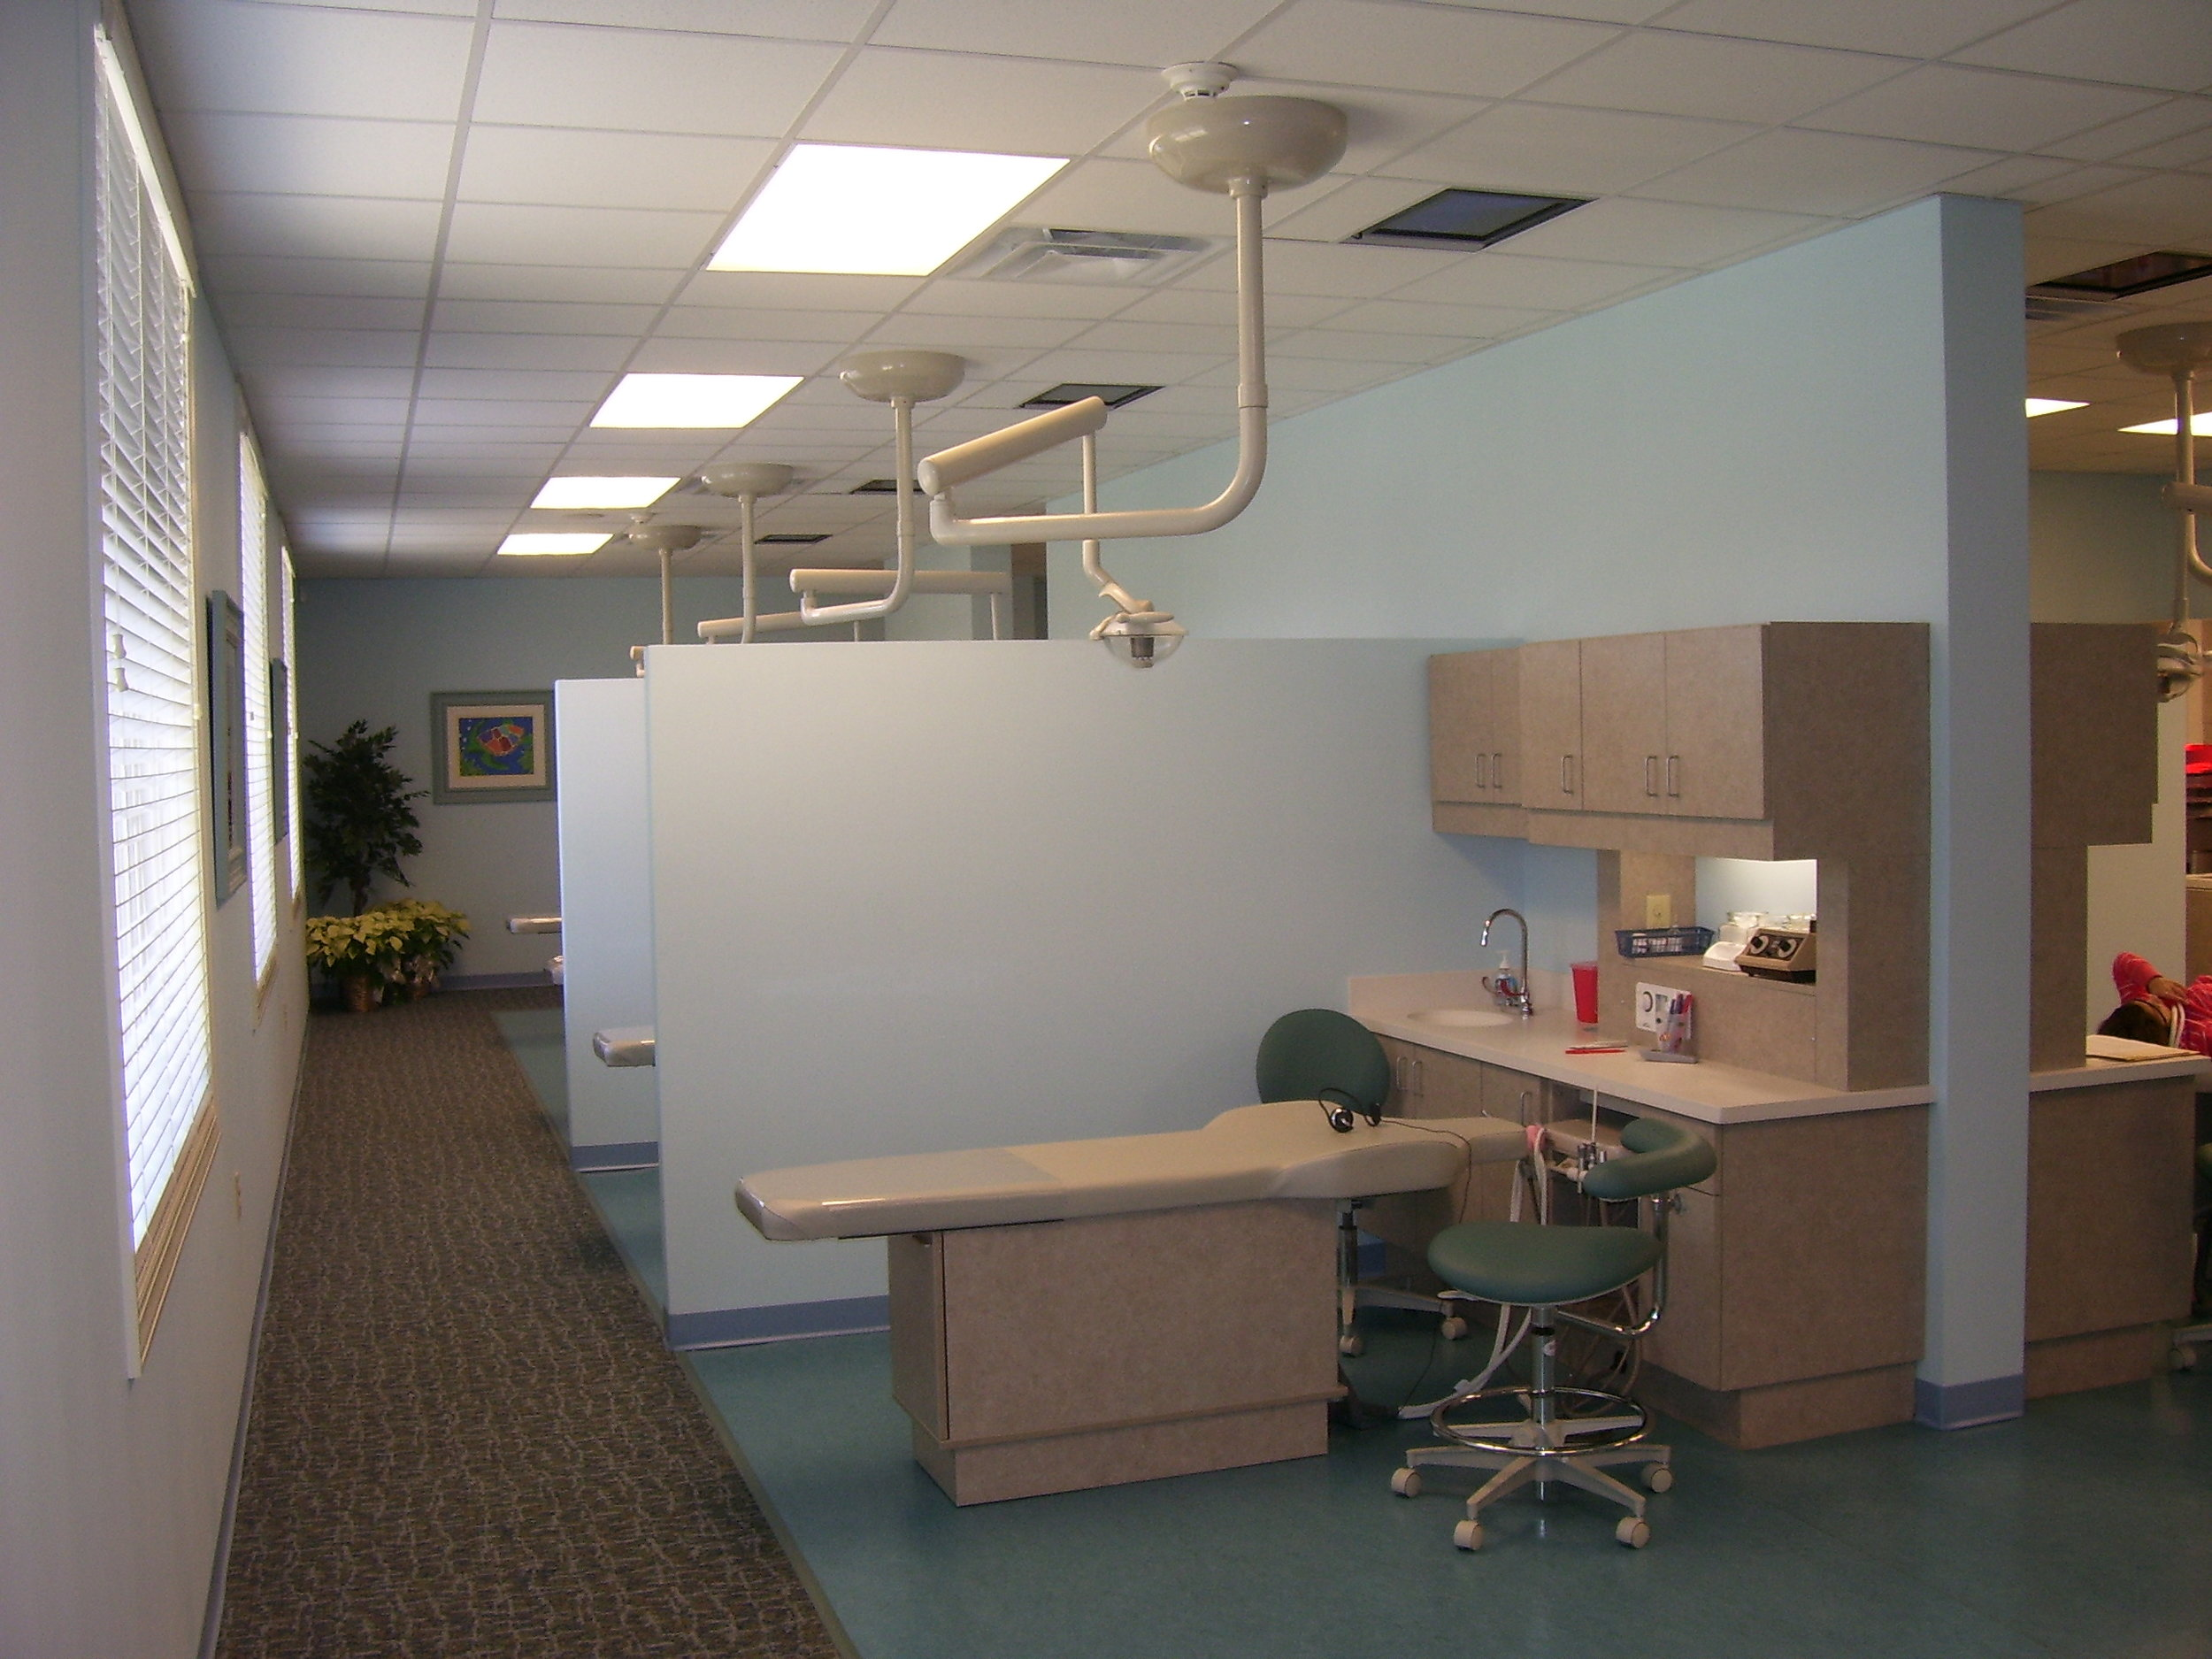 West Tennessee Pediatric Dental Group